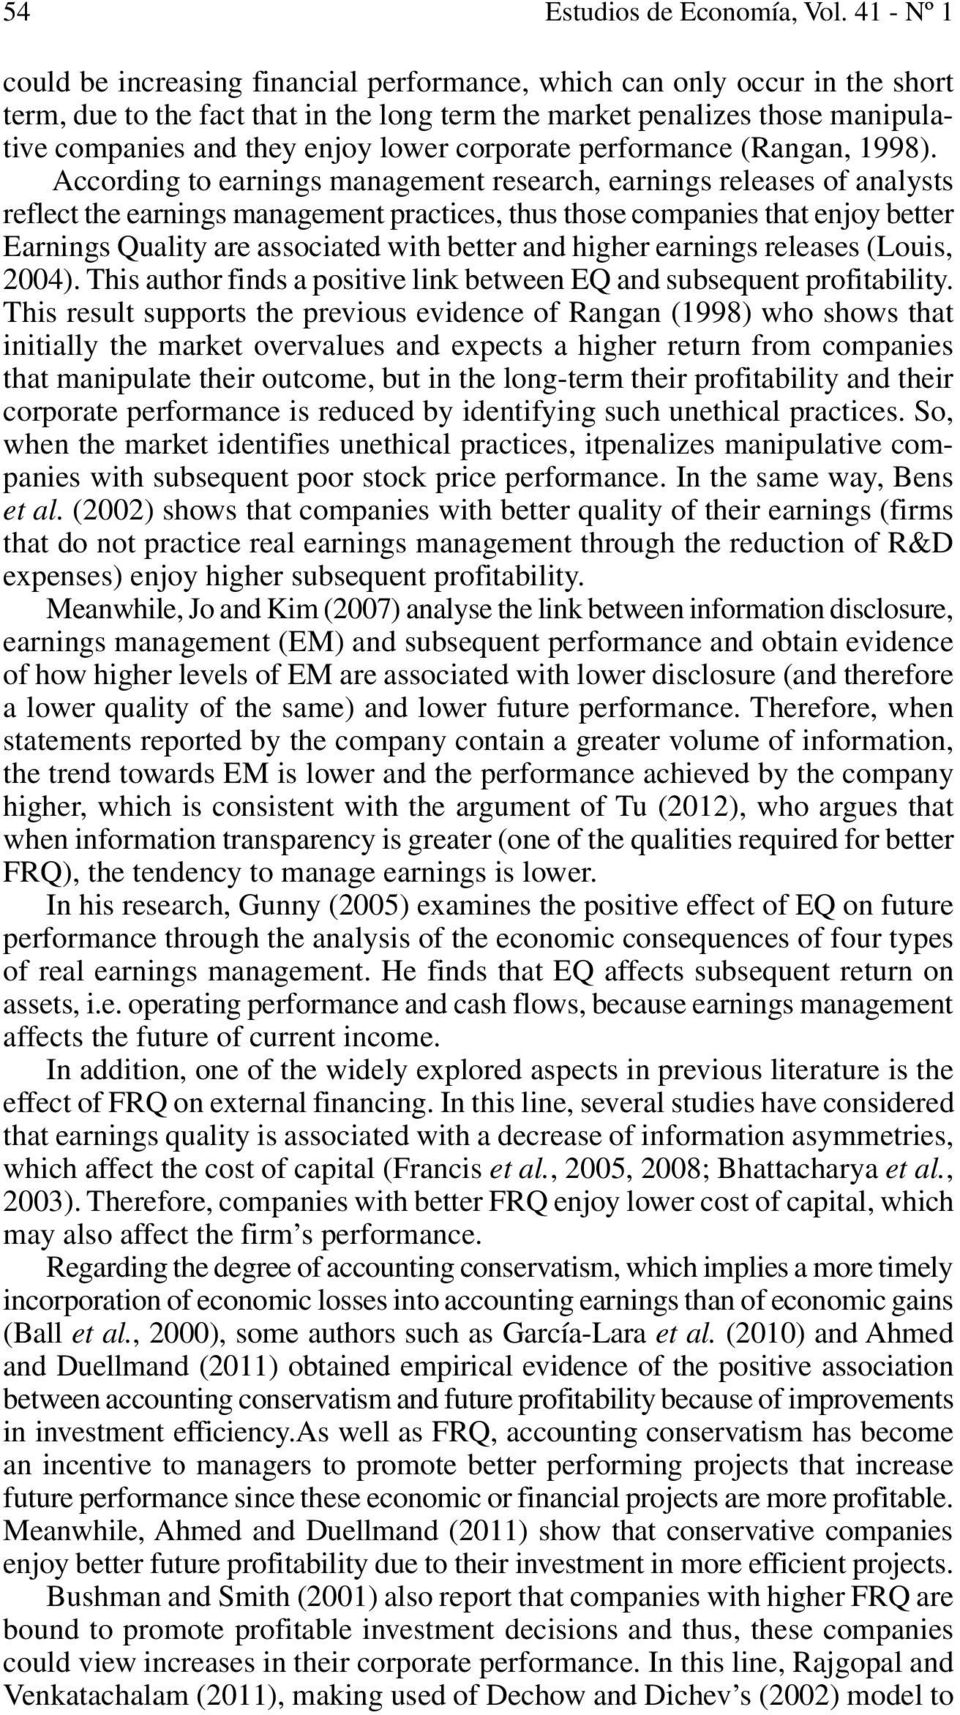 lower corporate performance (Rangan, 1998).